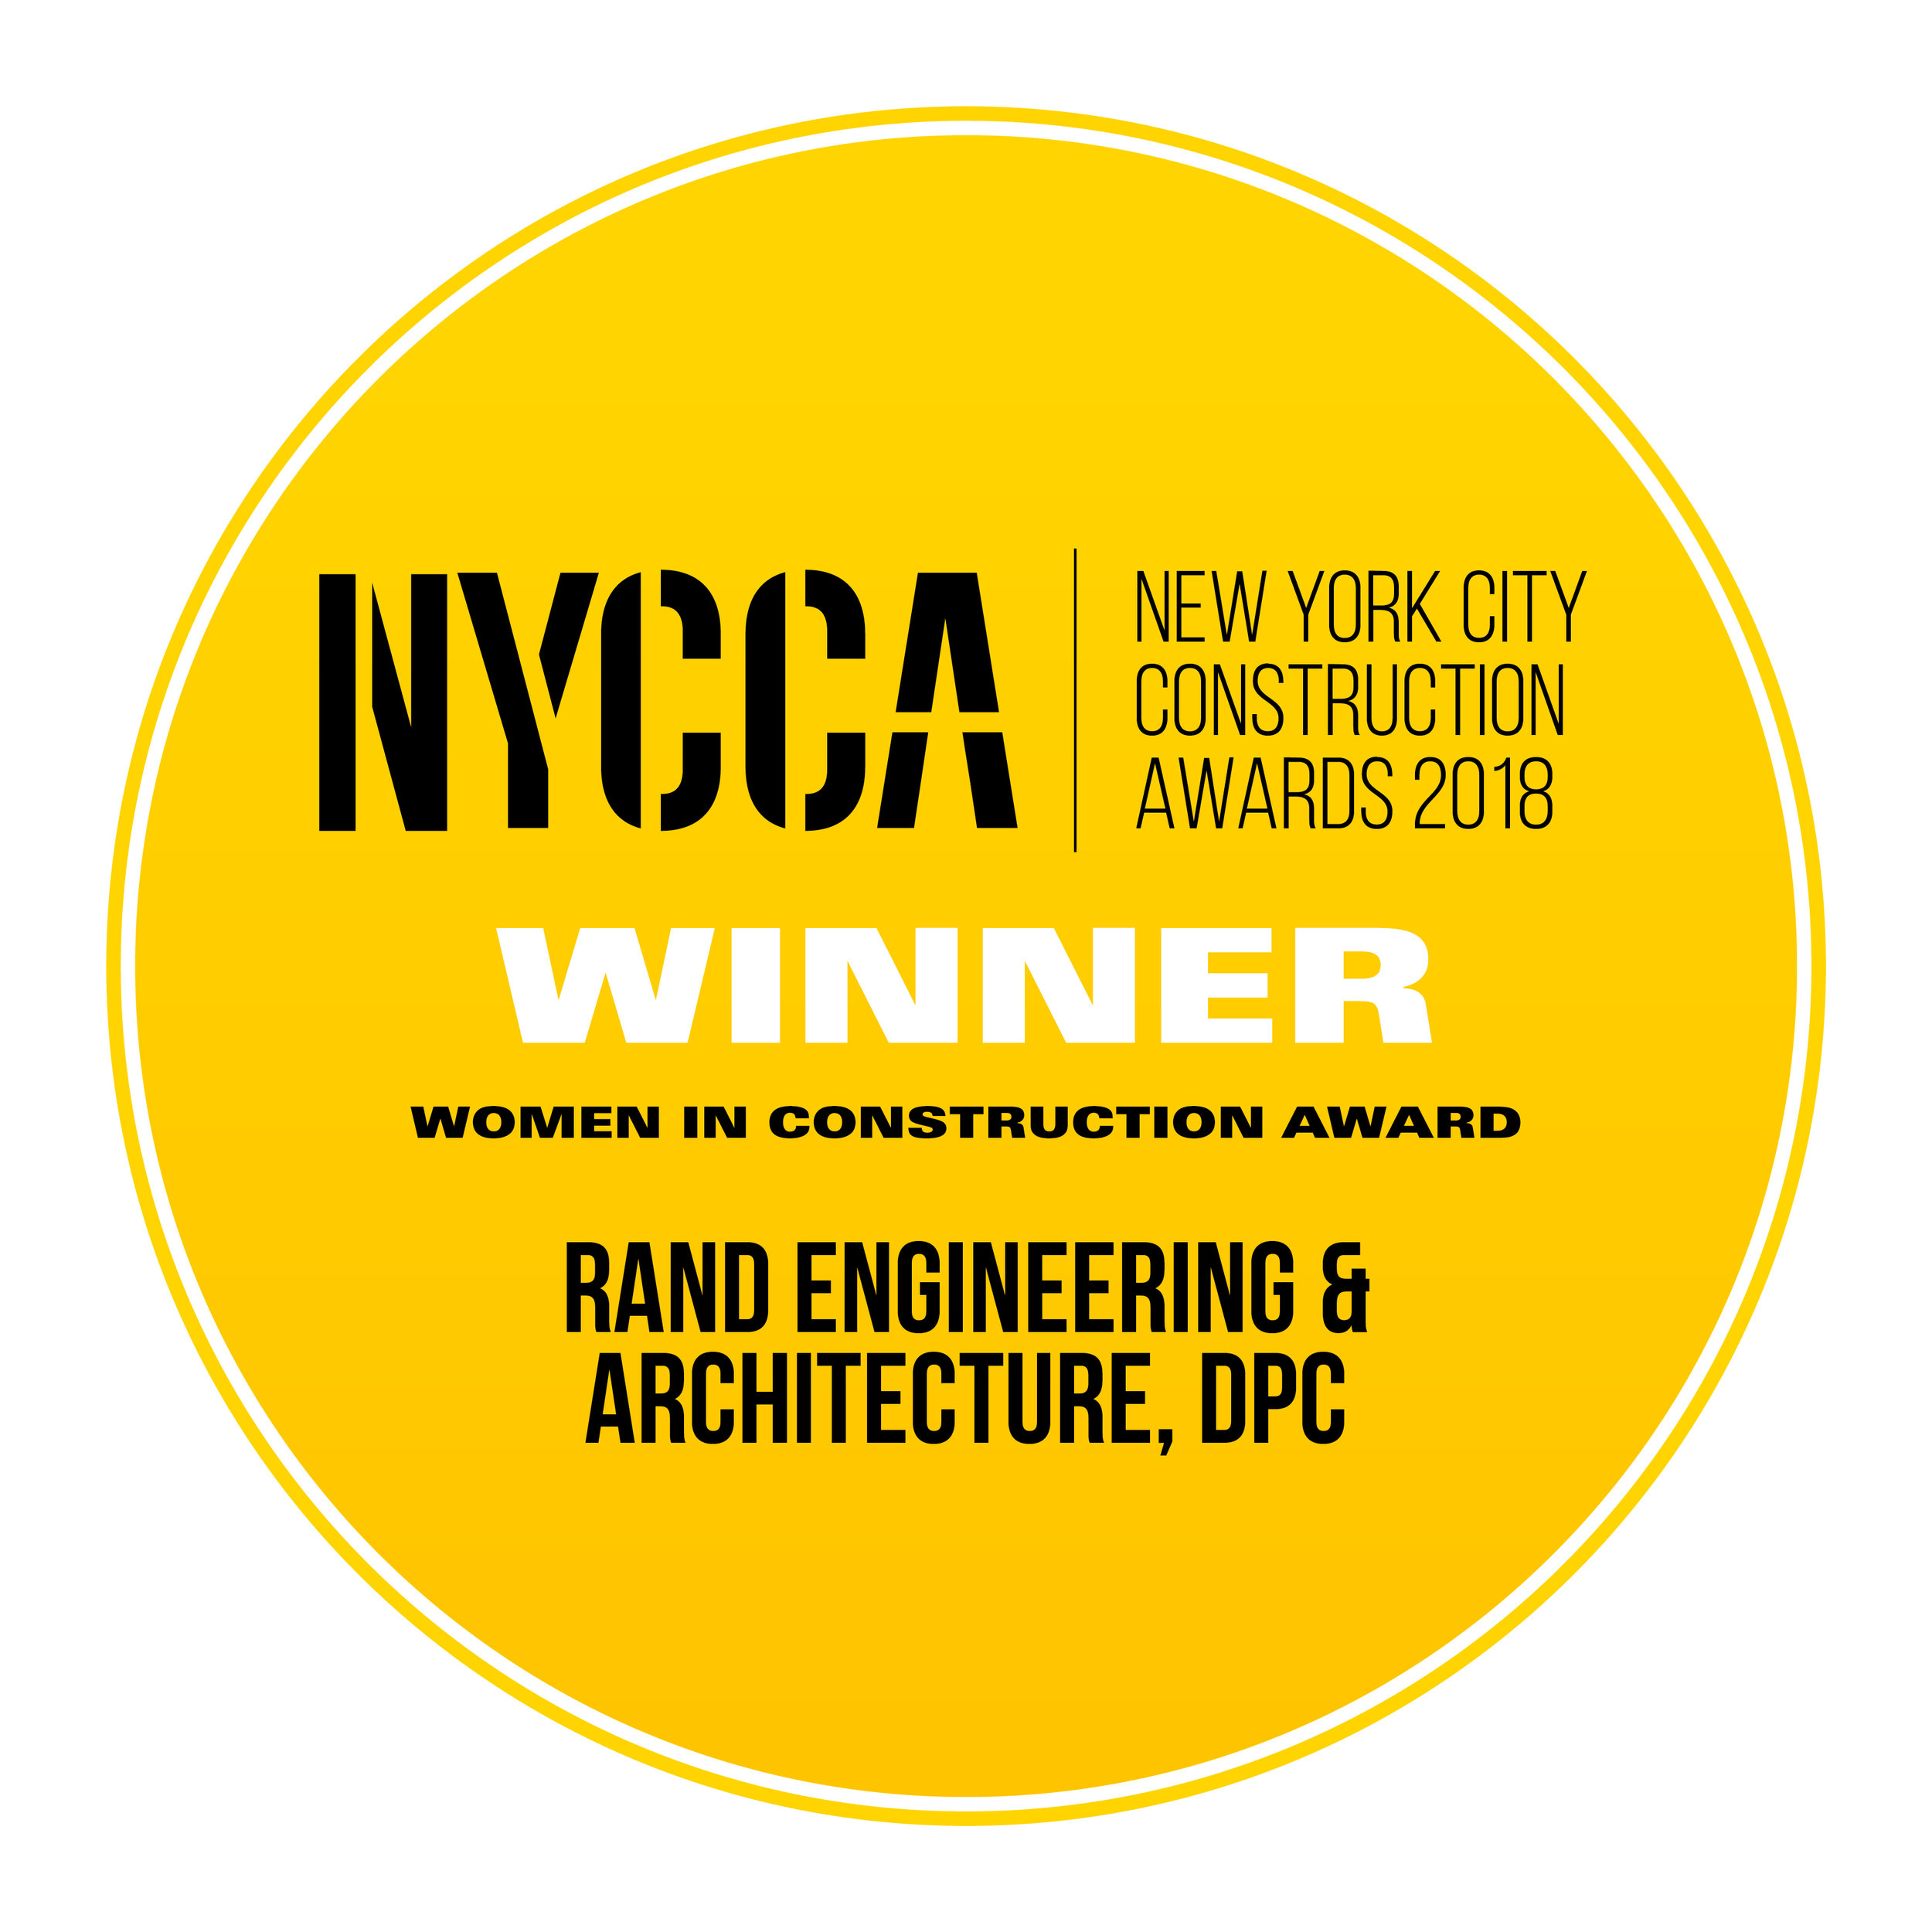 RAND Engineering & Architecture, DPC - Women in Construction Award